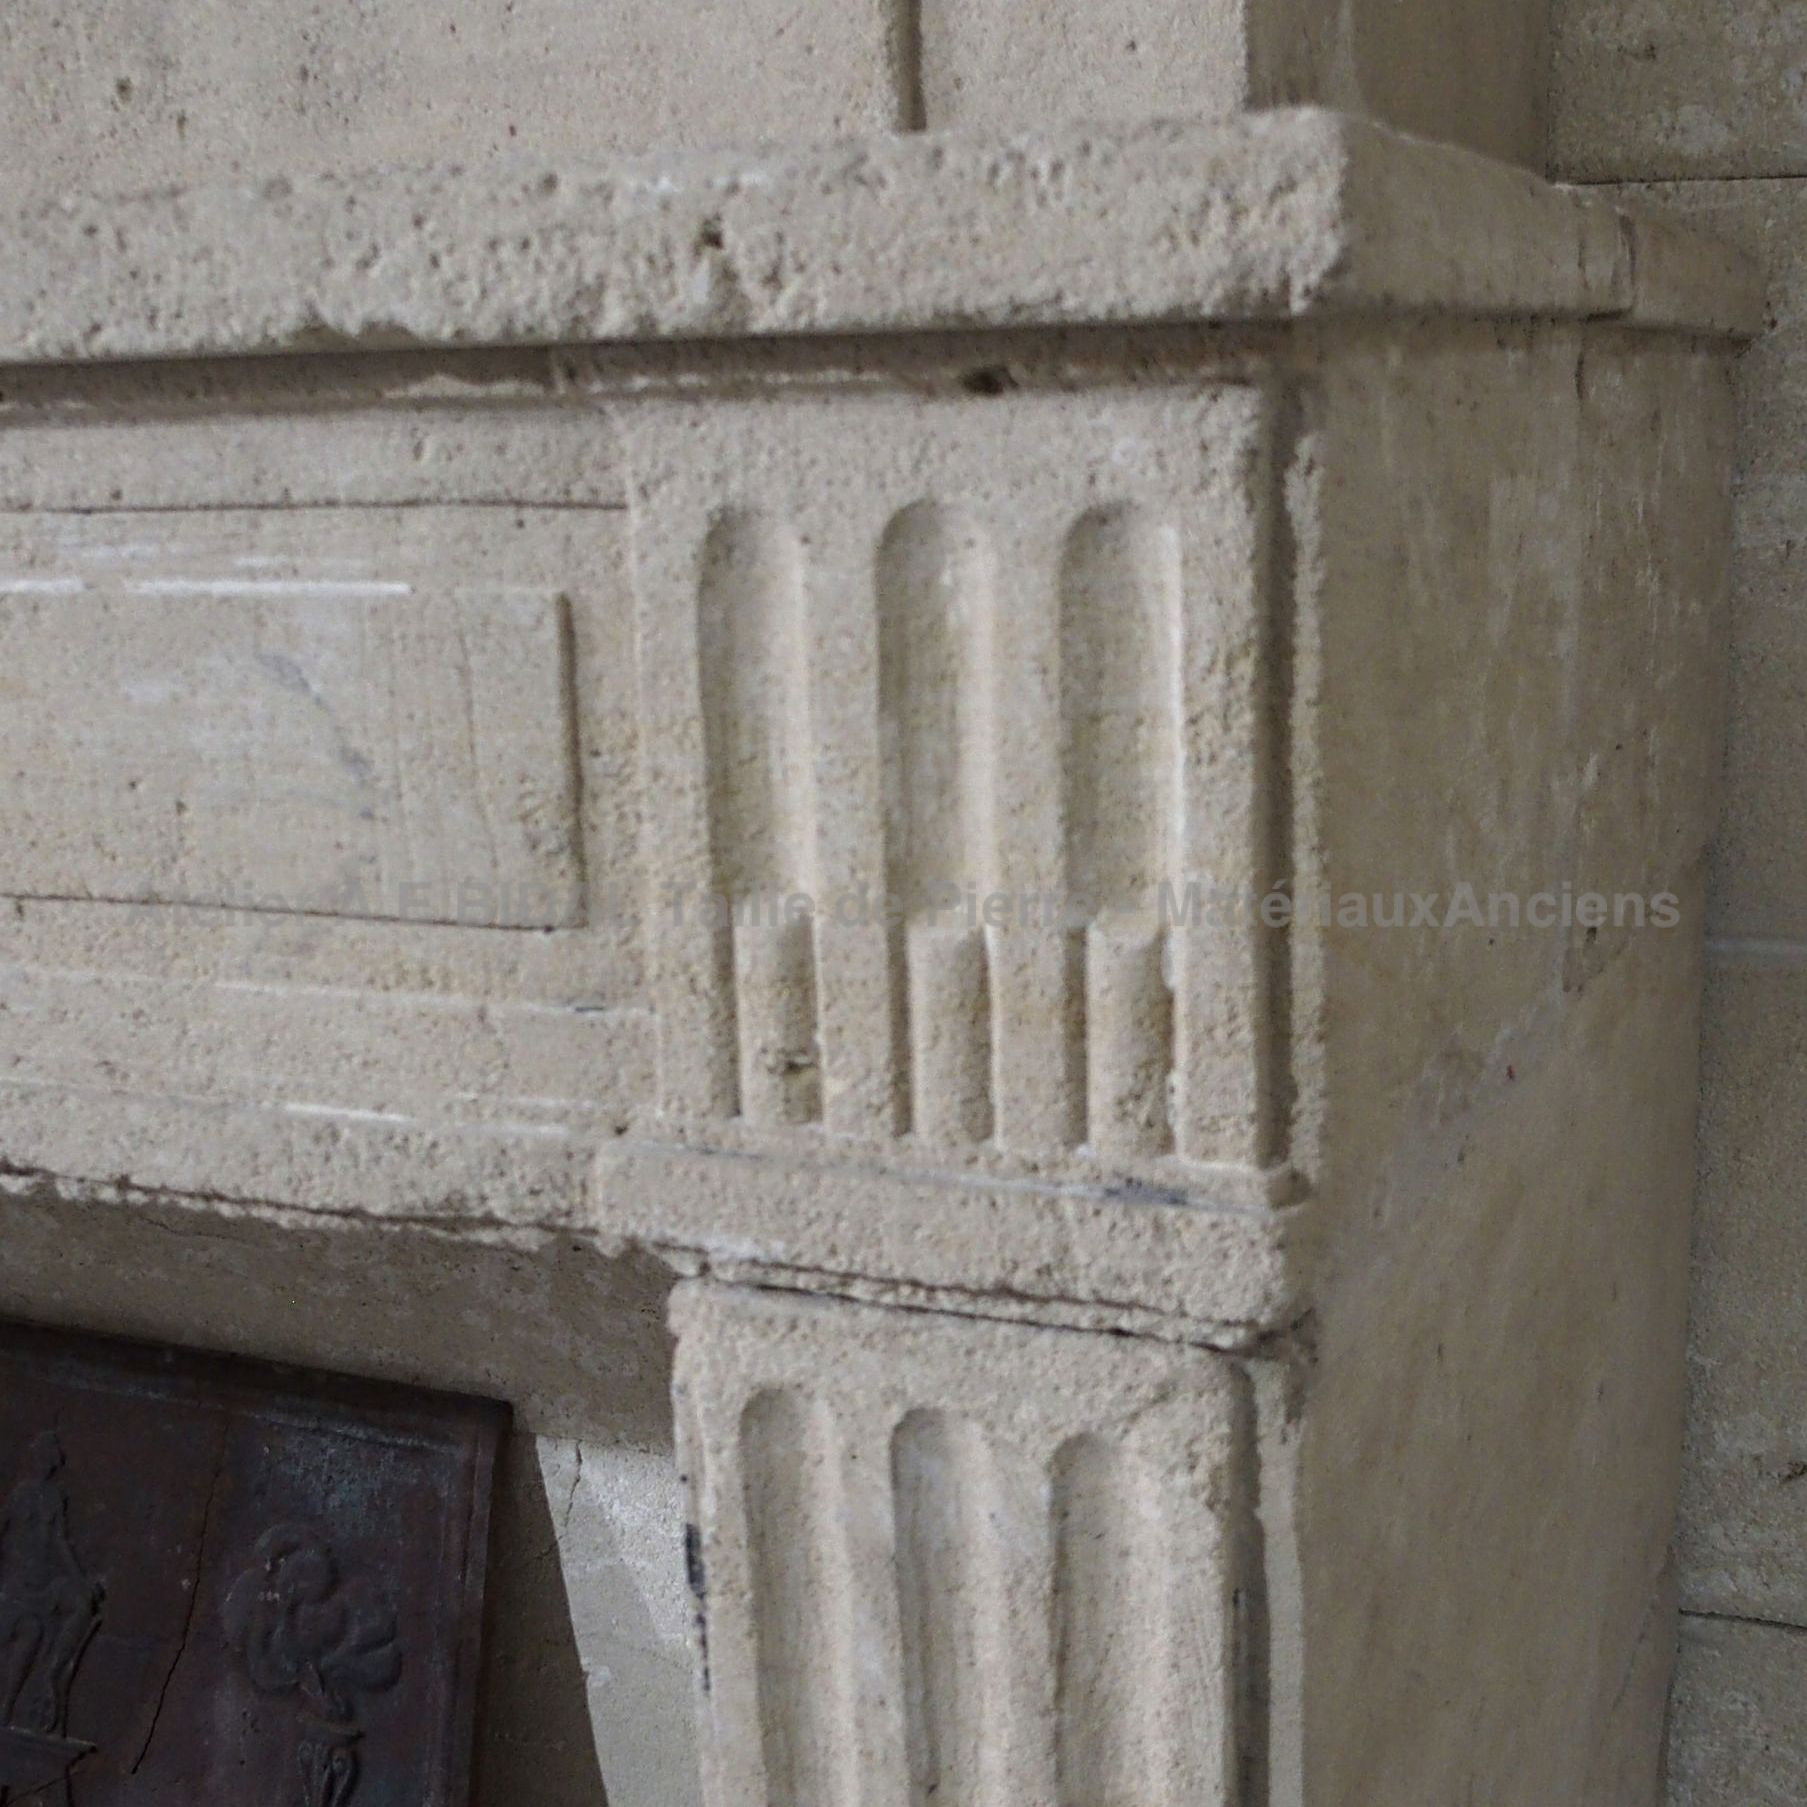 Antique Louis 16 fireplace ins tone - A fireplace with trumeau carved in natural stone.